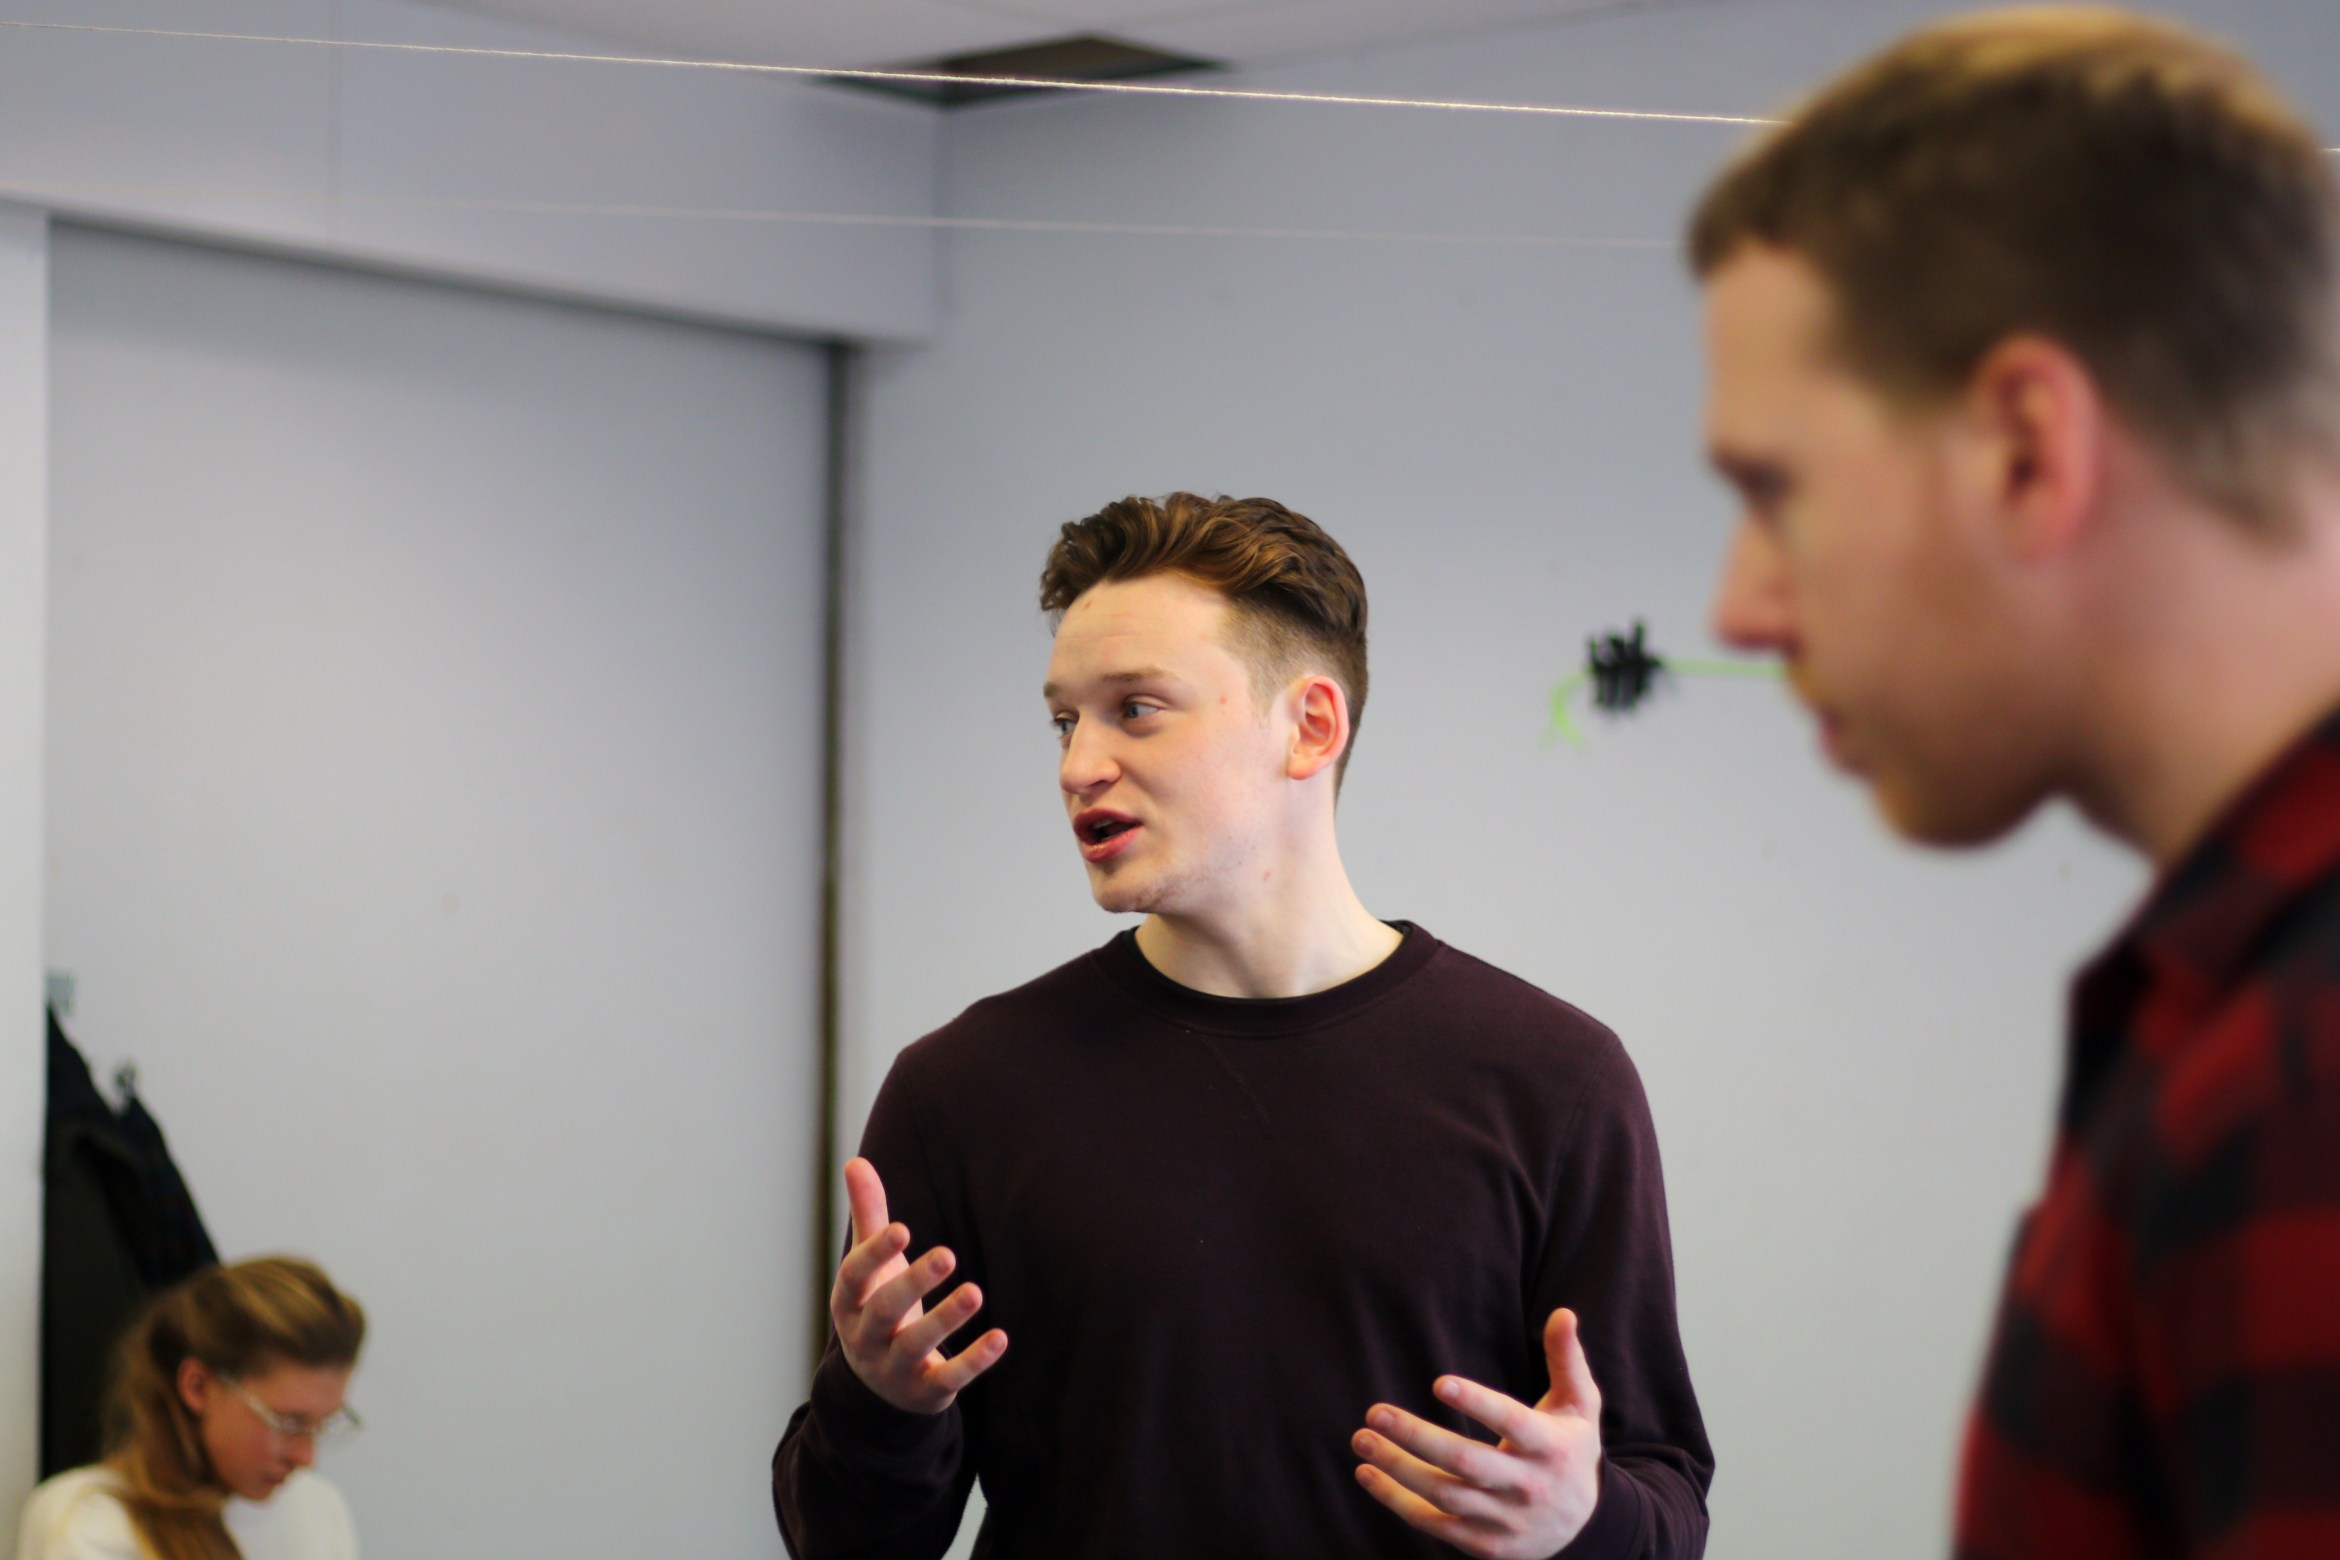 Rehearsal Images - Plastic, Old Red Lion (courtesy of Mathew Foster) (7).jpg